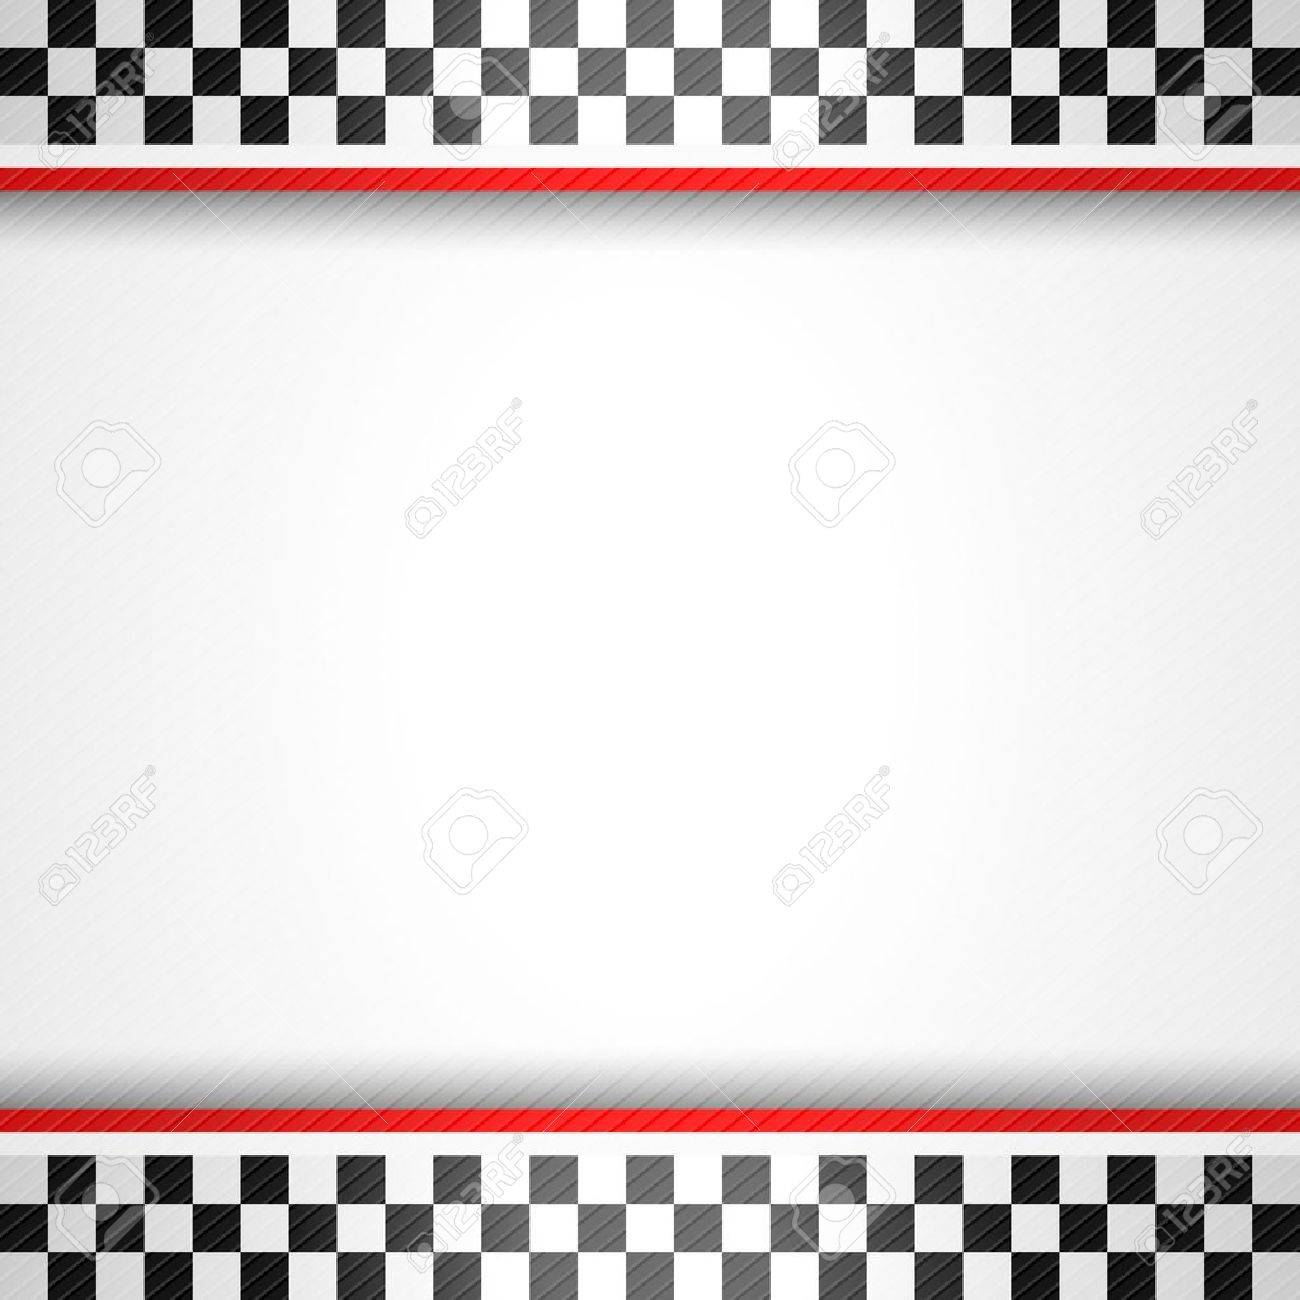 Racing square background - 17696605